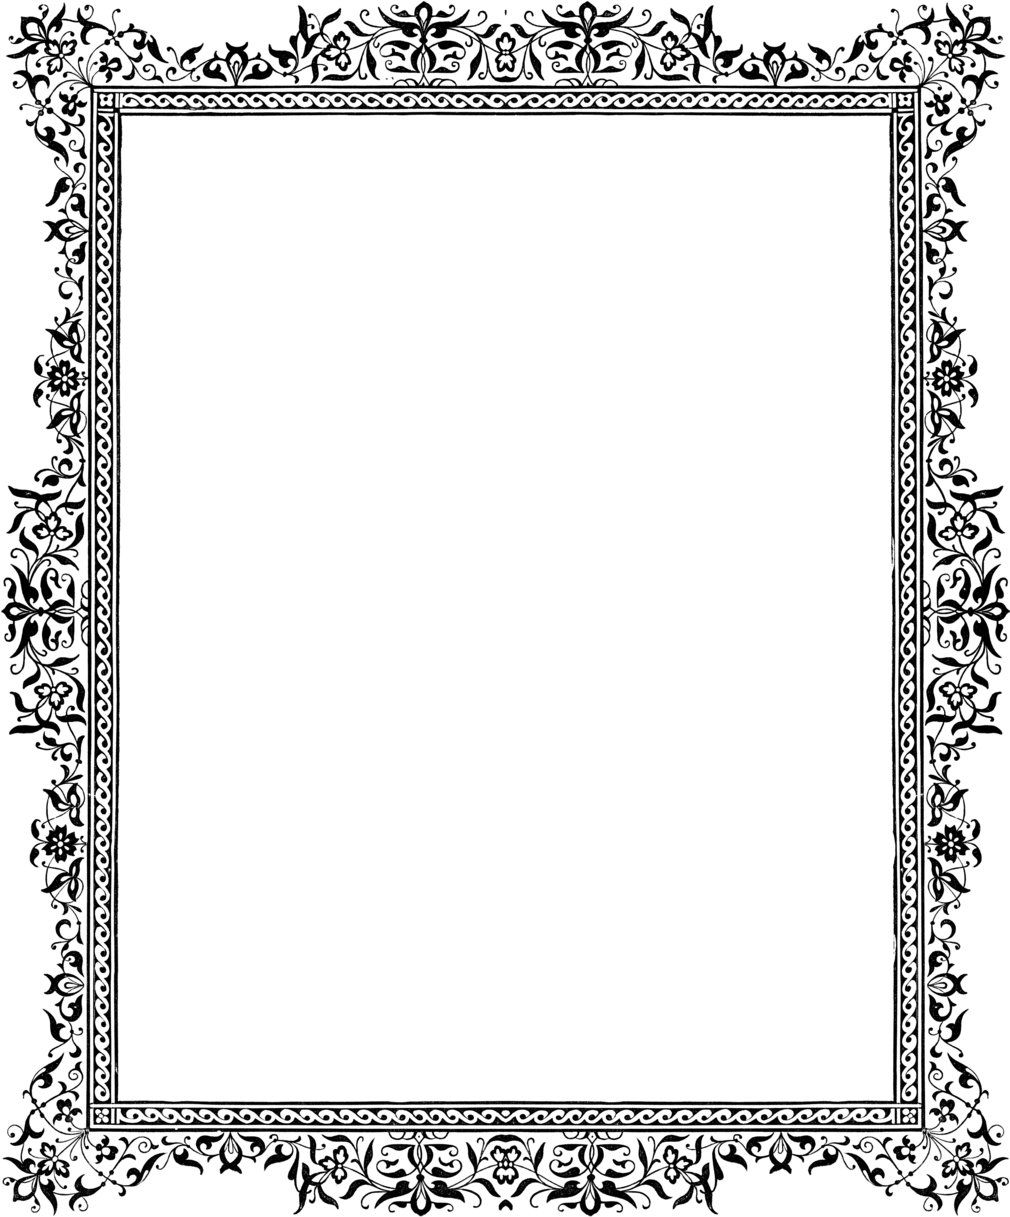 Decorative borders for microsoft word fancy page borders for microsoft - Free Microsoft Borders And Frames Wow Com Image Results